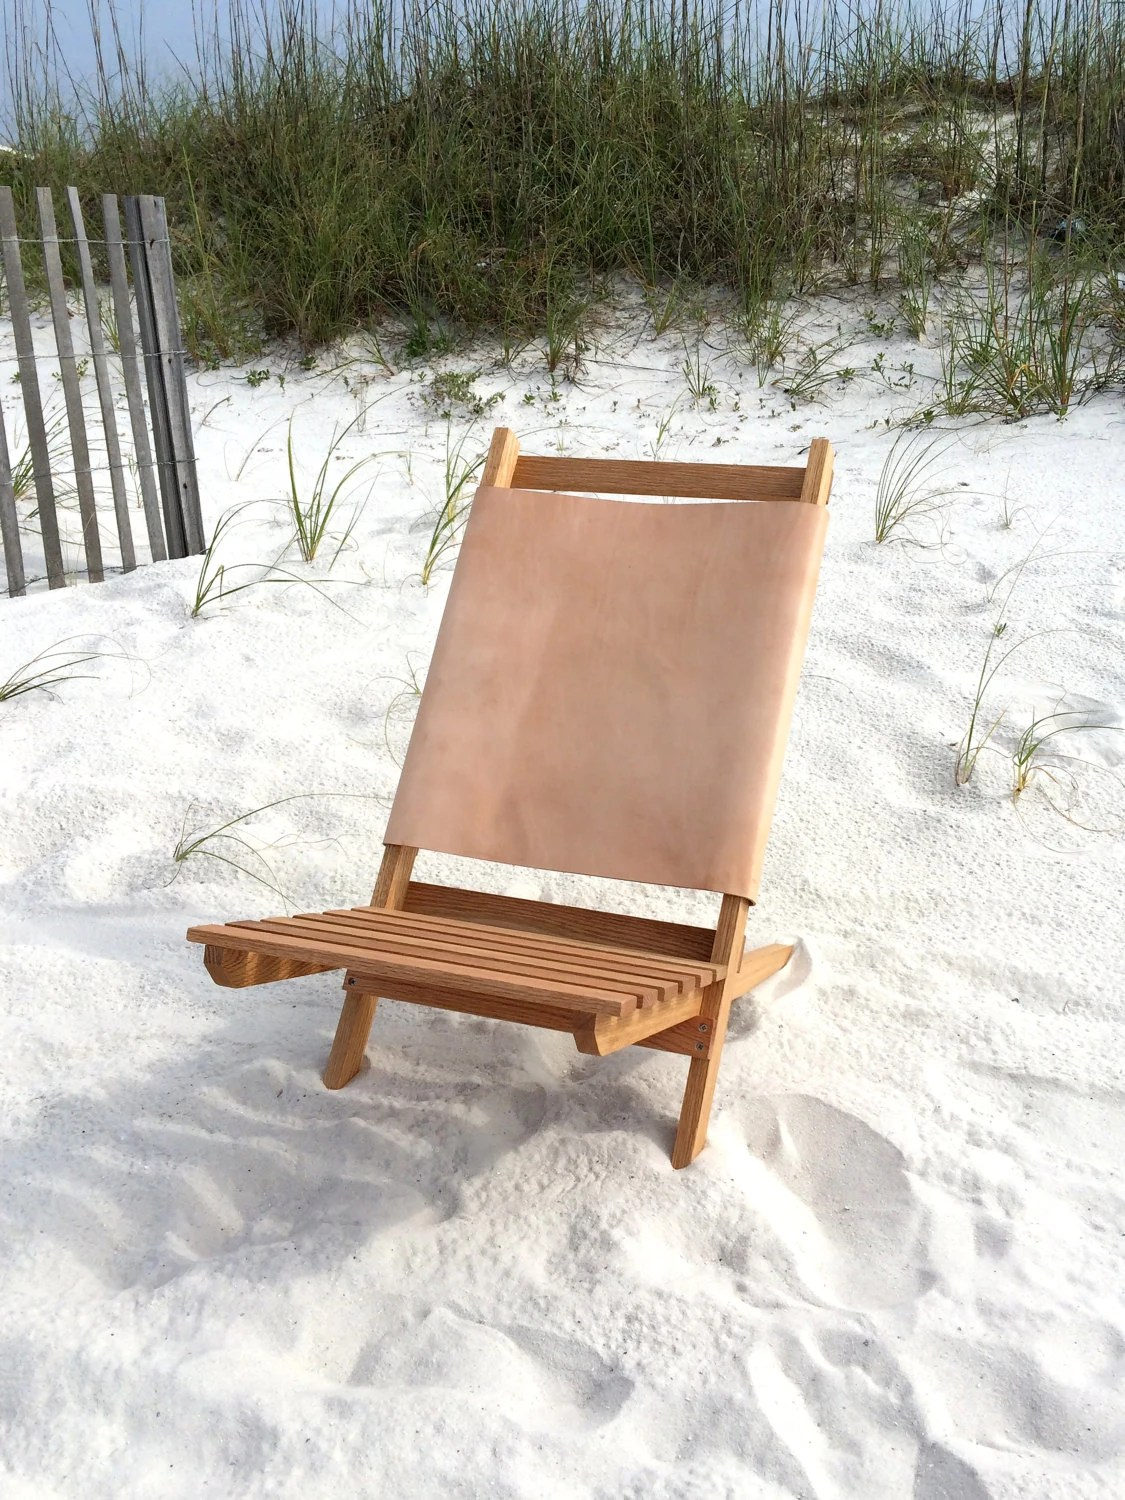 wood camp chair sleeping in a every night leather by postdallas on etsy